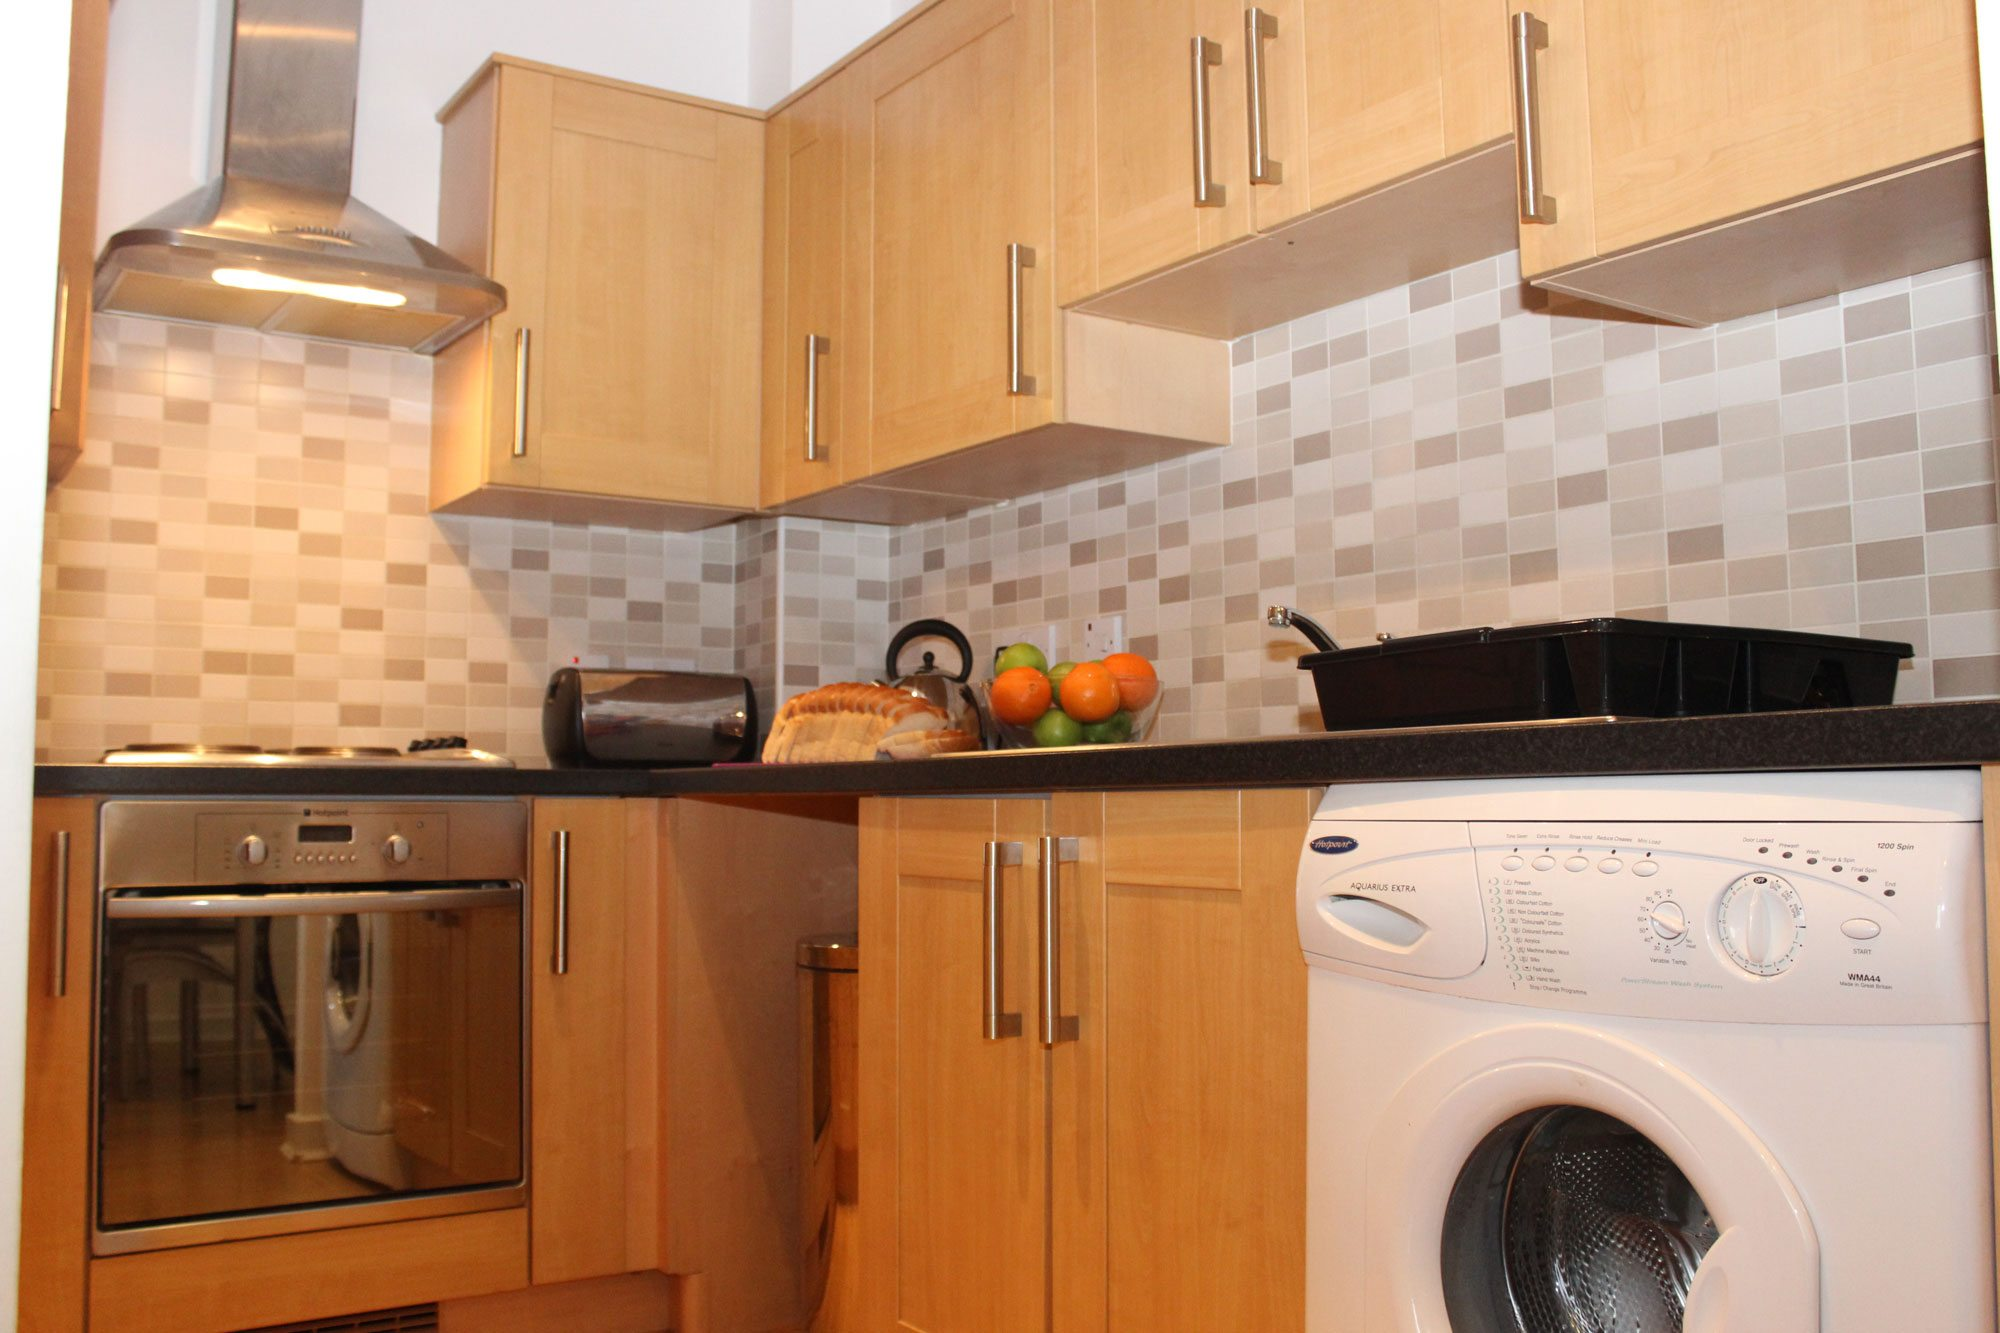 The-Academy-Corporate-Accommodation-Luton---Urban-Stay-Serviced-Apartments-UK---kitchen